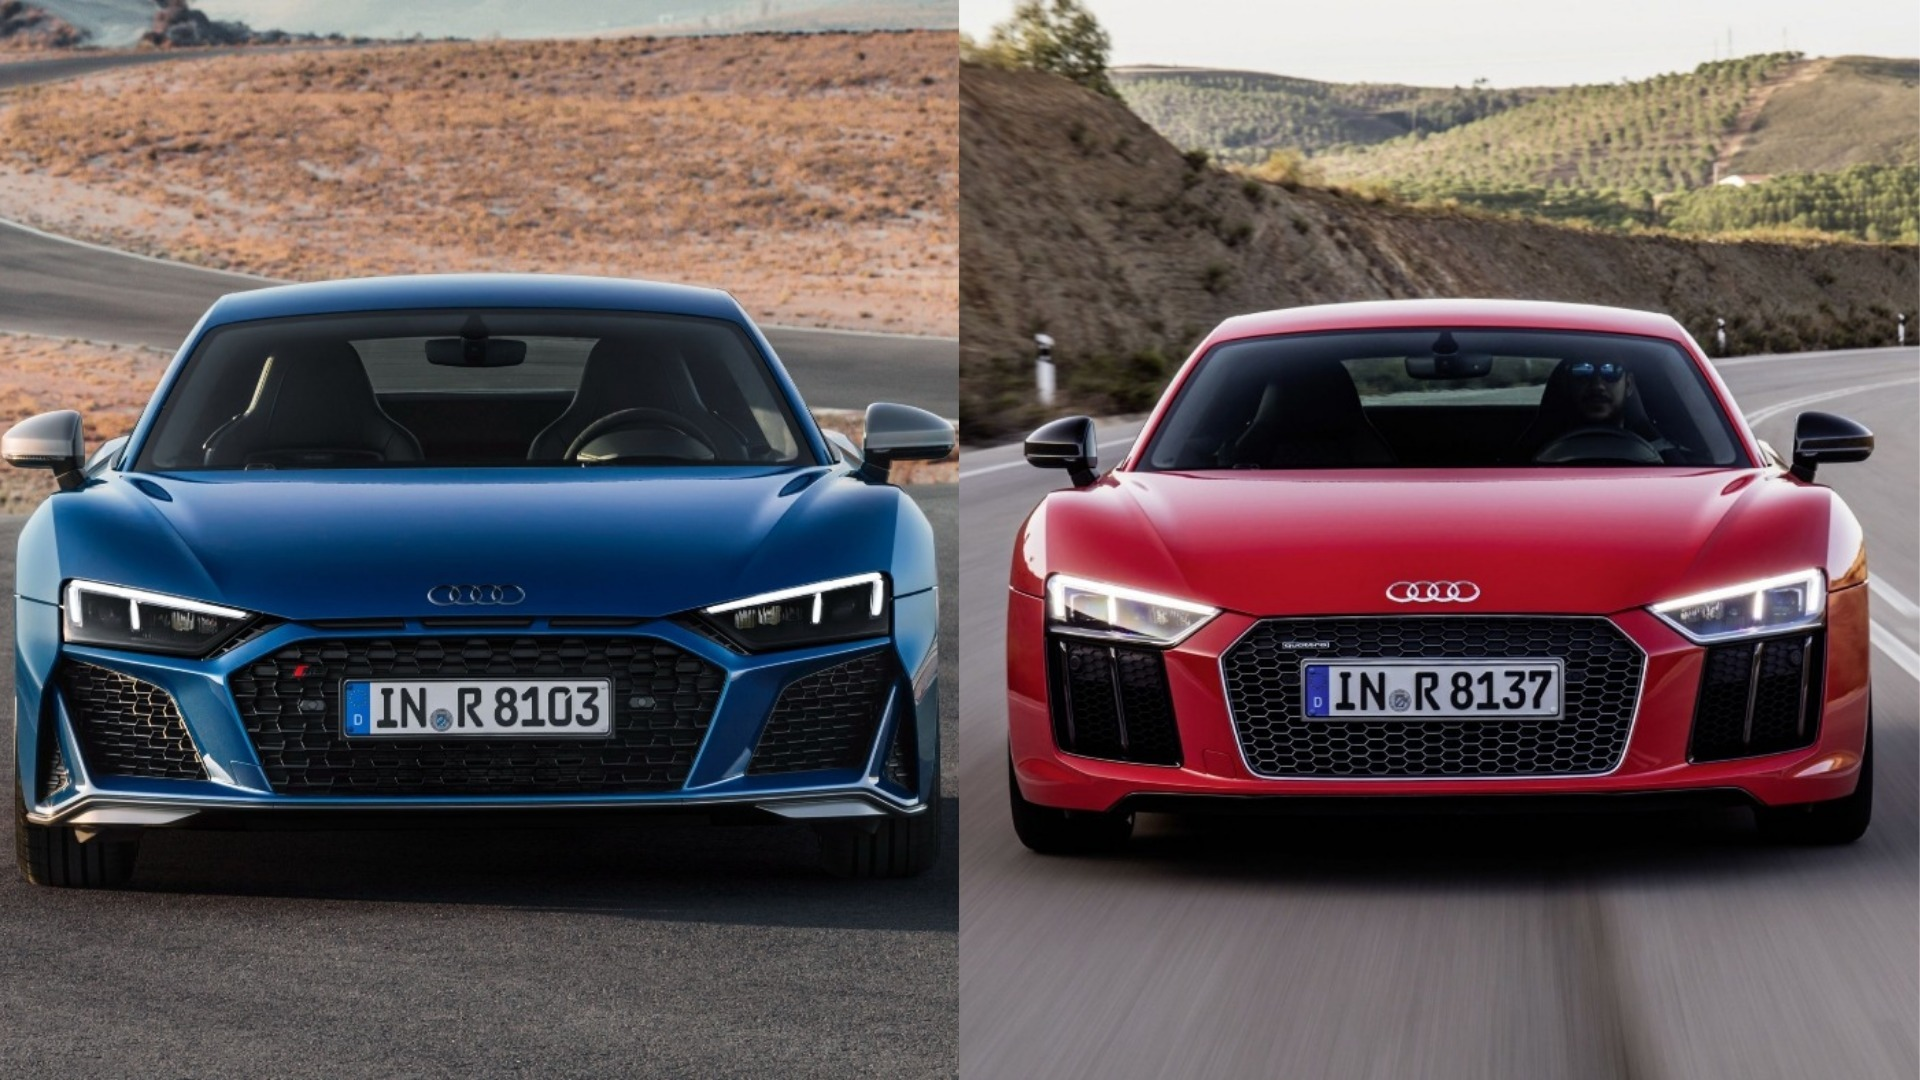 Photo Comparison 2020 Audi R8 Vs 2015 Audi R8 Autoevolution